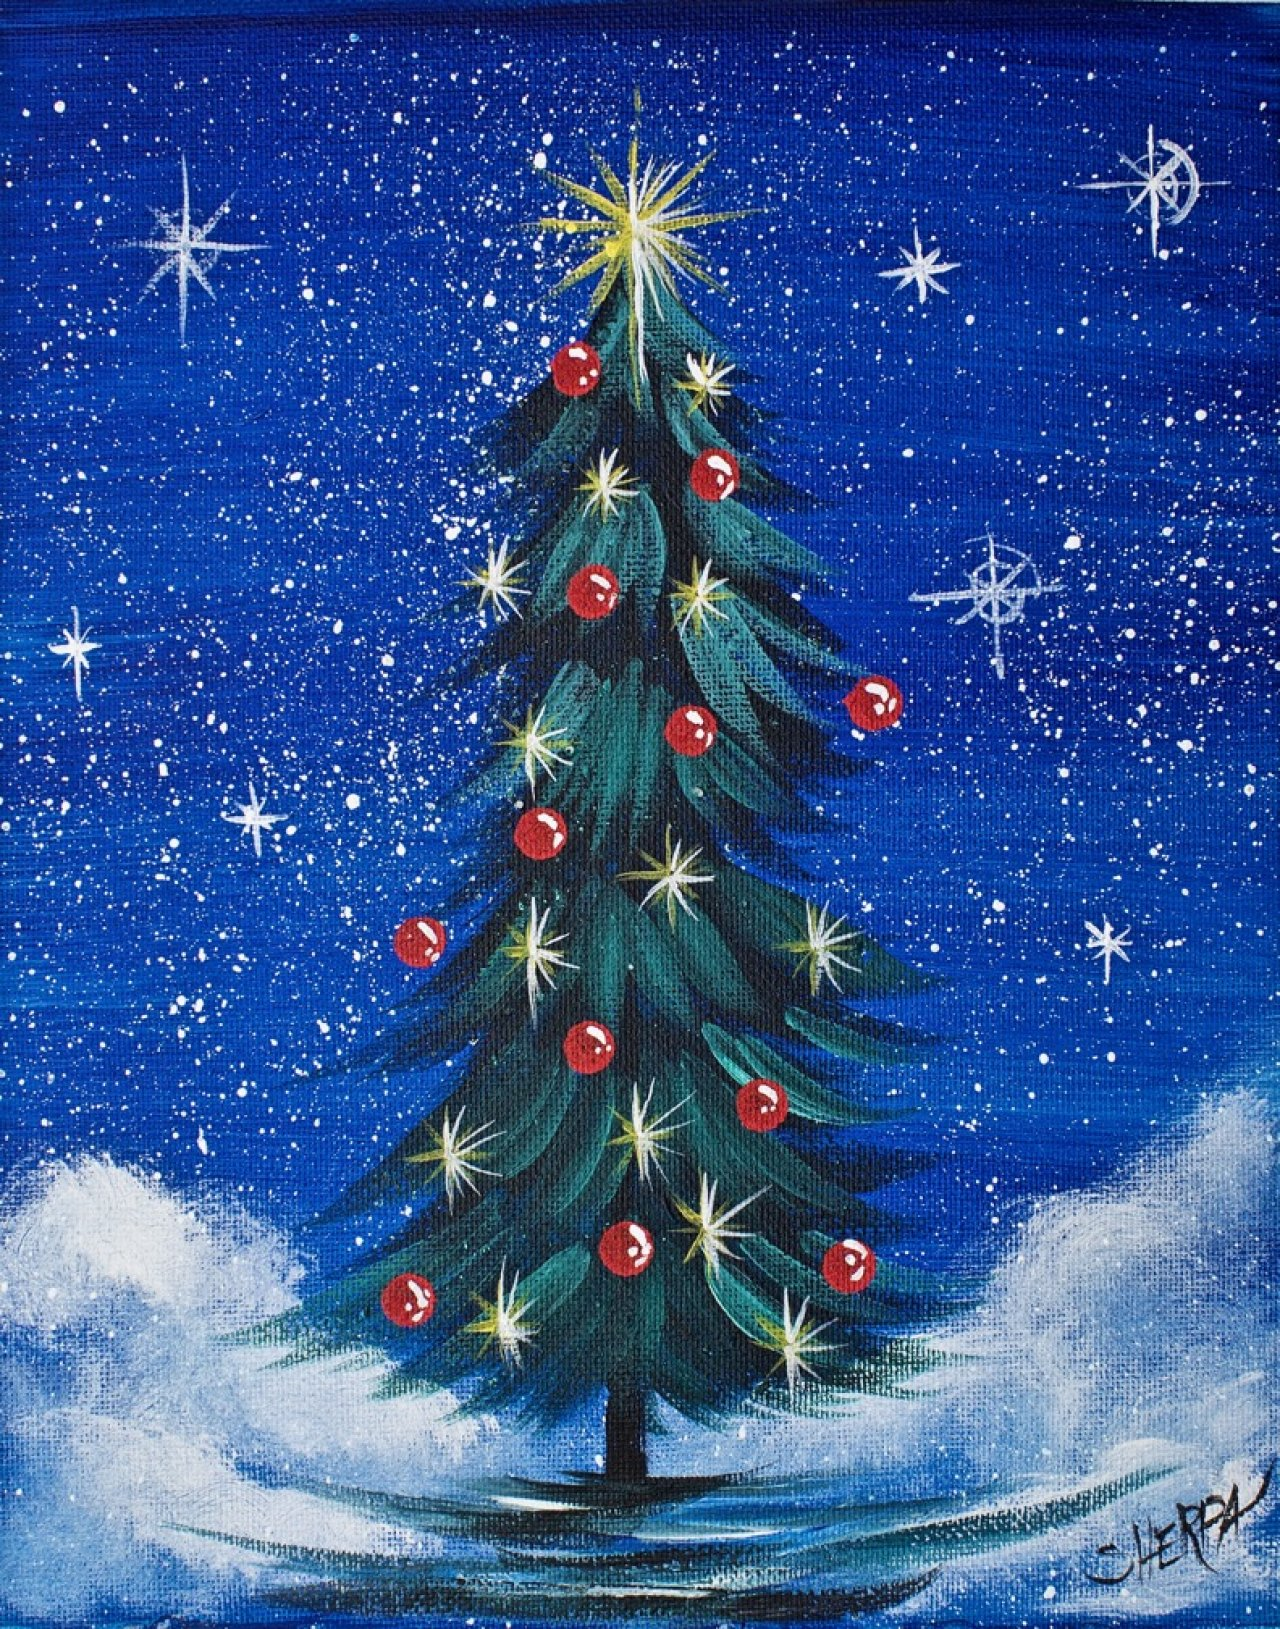 Lets Paint This Acrylic Painting Of A Simple Christmas Tree In The Snow We Will Cover Scrumbled How To Pine And Easy Twinkle Lights